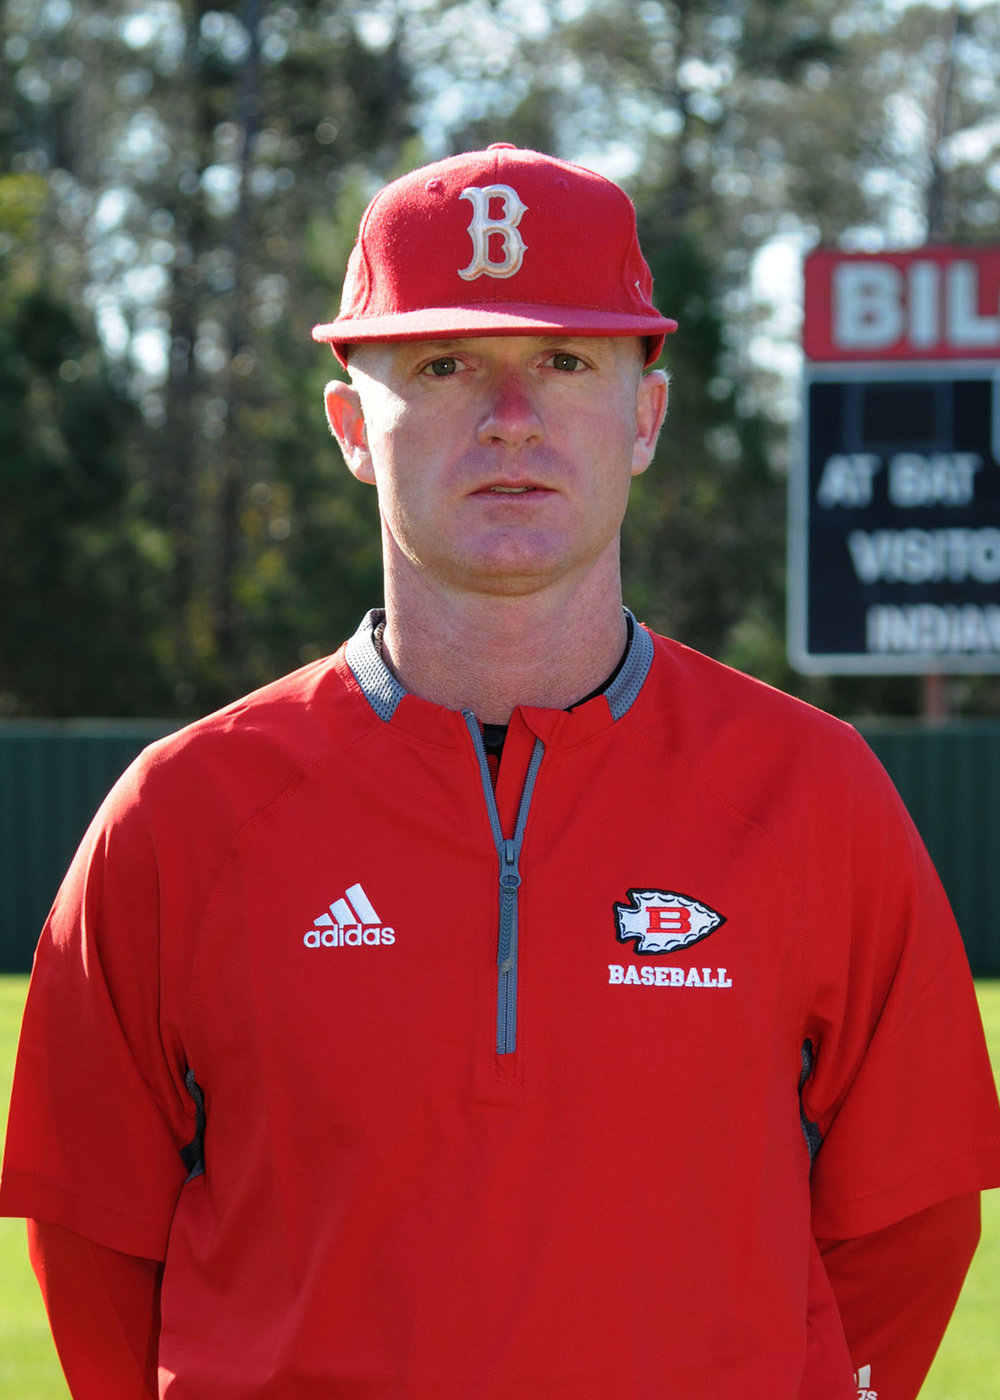 "Jeremy Cothran - Coaching History:2005- 2013 Assistant Baseball at Pearl River Central High School2013- 2014 Head Baseball at Tylertown High School2014- 2015 Assistant Baseball at Bay High School2015- Present Head JH/ Assistant at Biloxi High SchoolEducation/Experience:   BS Coaching and Sports Administration          University of Southern MS 2005Family:         Wife-Mary CothranSons- Wes Cothran (10), Wil Cothran (8), Walker Cothran (4), Nick Dukes (12)Daughters- Linley Cothran (4), Arianna Dukes (13)Outlook for 2018: As part of the best coaching staff, school, and community in the state I'm looking forward to a great season.  With the teams offseason hardwork and dedication to the program I believe the results will show for itself.  We strive to make ""Indian Nation"" the best place to play baseball in the state!  Go Indians!!!"